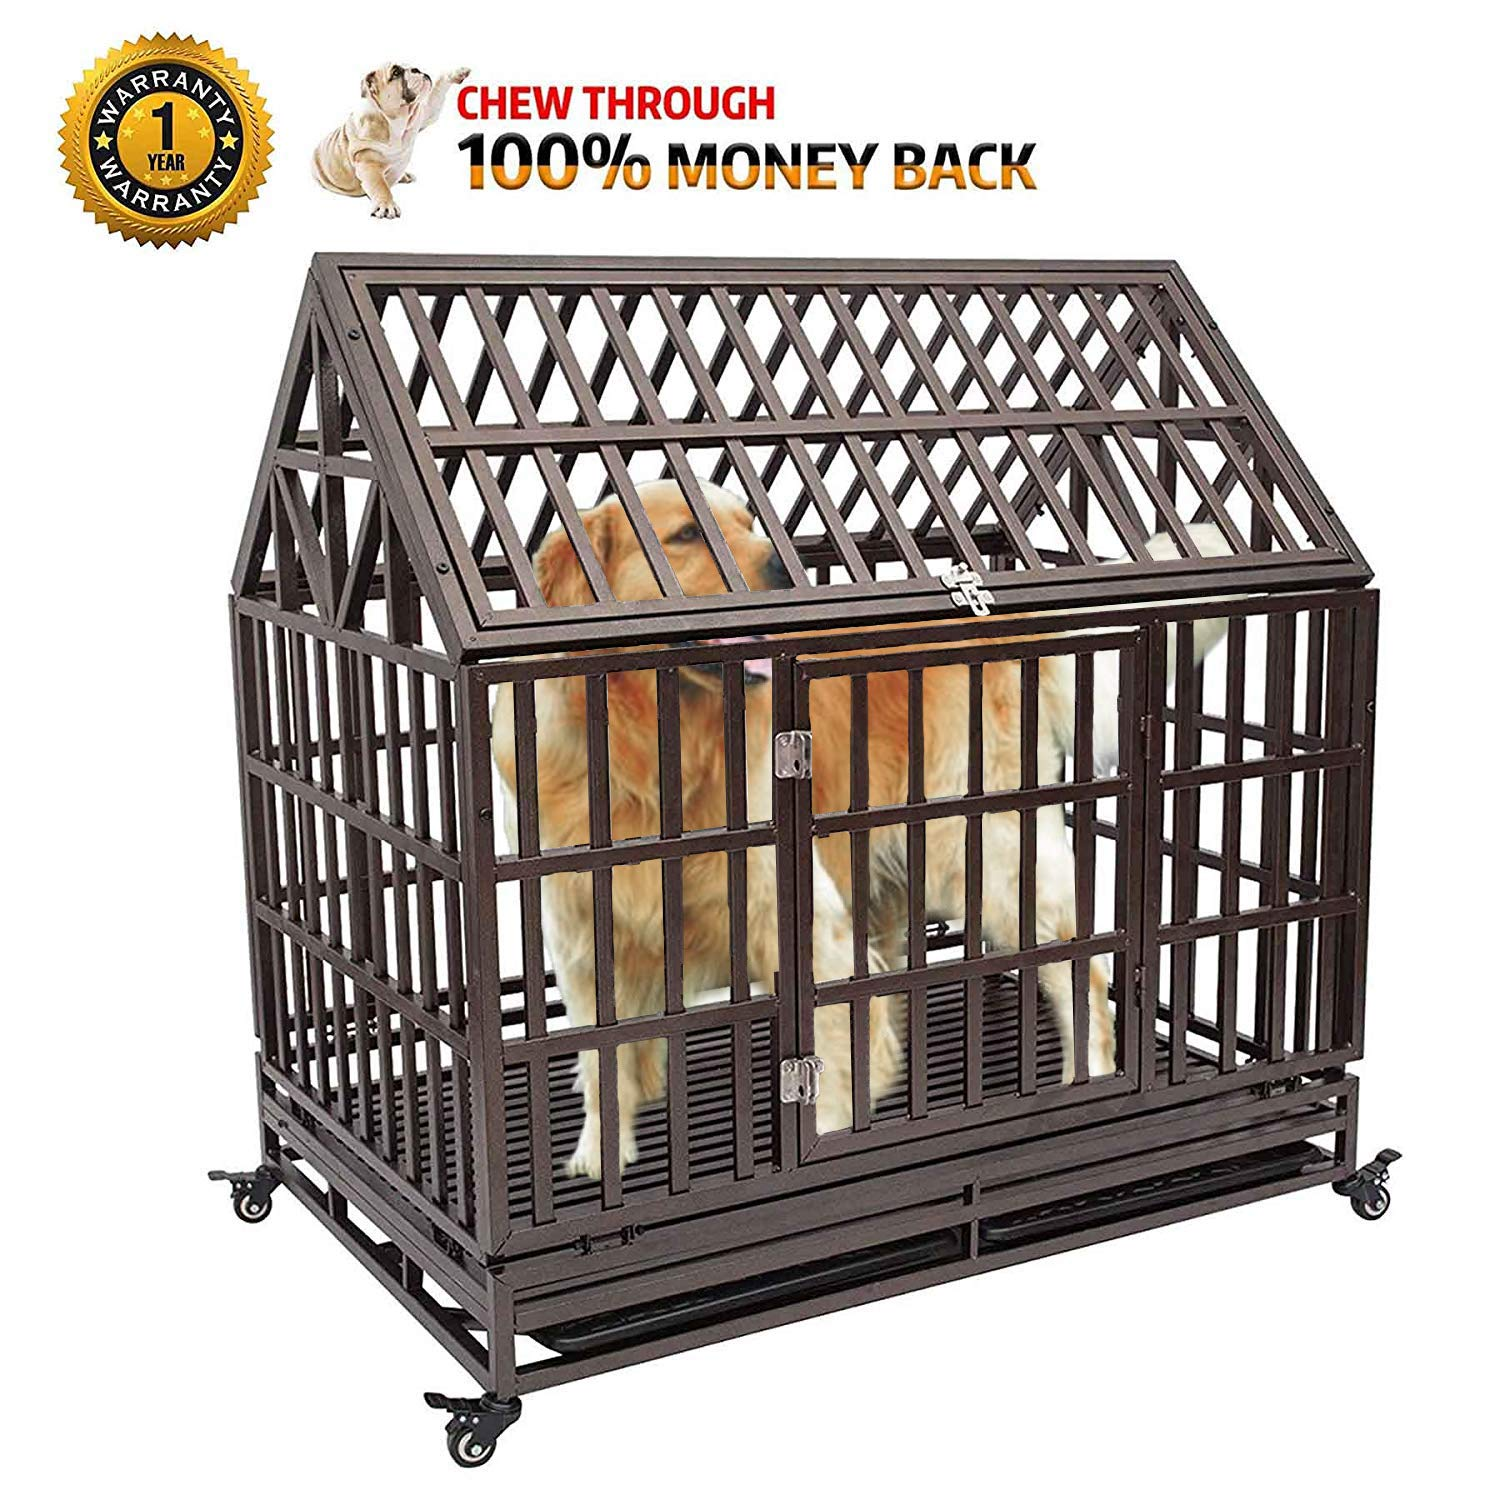 Haige Pet Your Pet Nanny Dog Crate Cage Kennel Playpen Heavy Duty Never Rust for Large Dogs with Patent Lock and Four Wheels